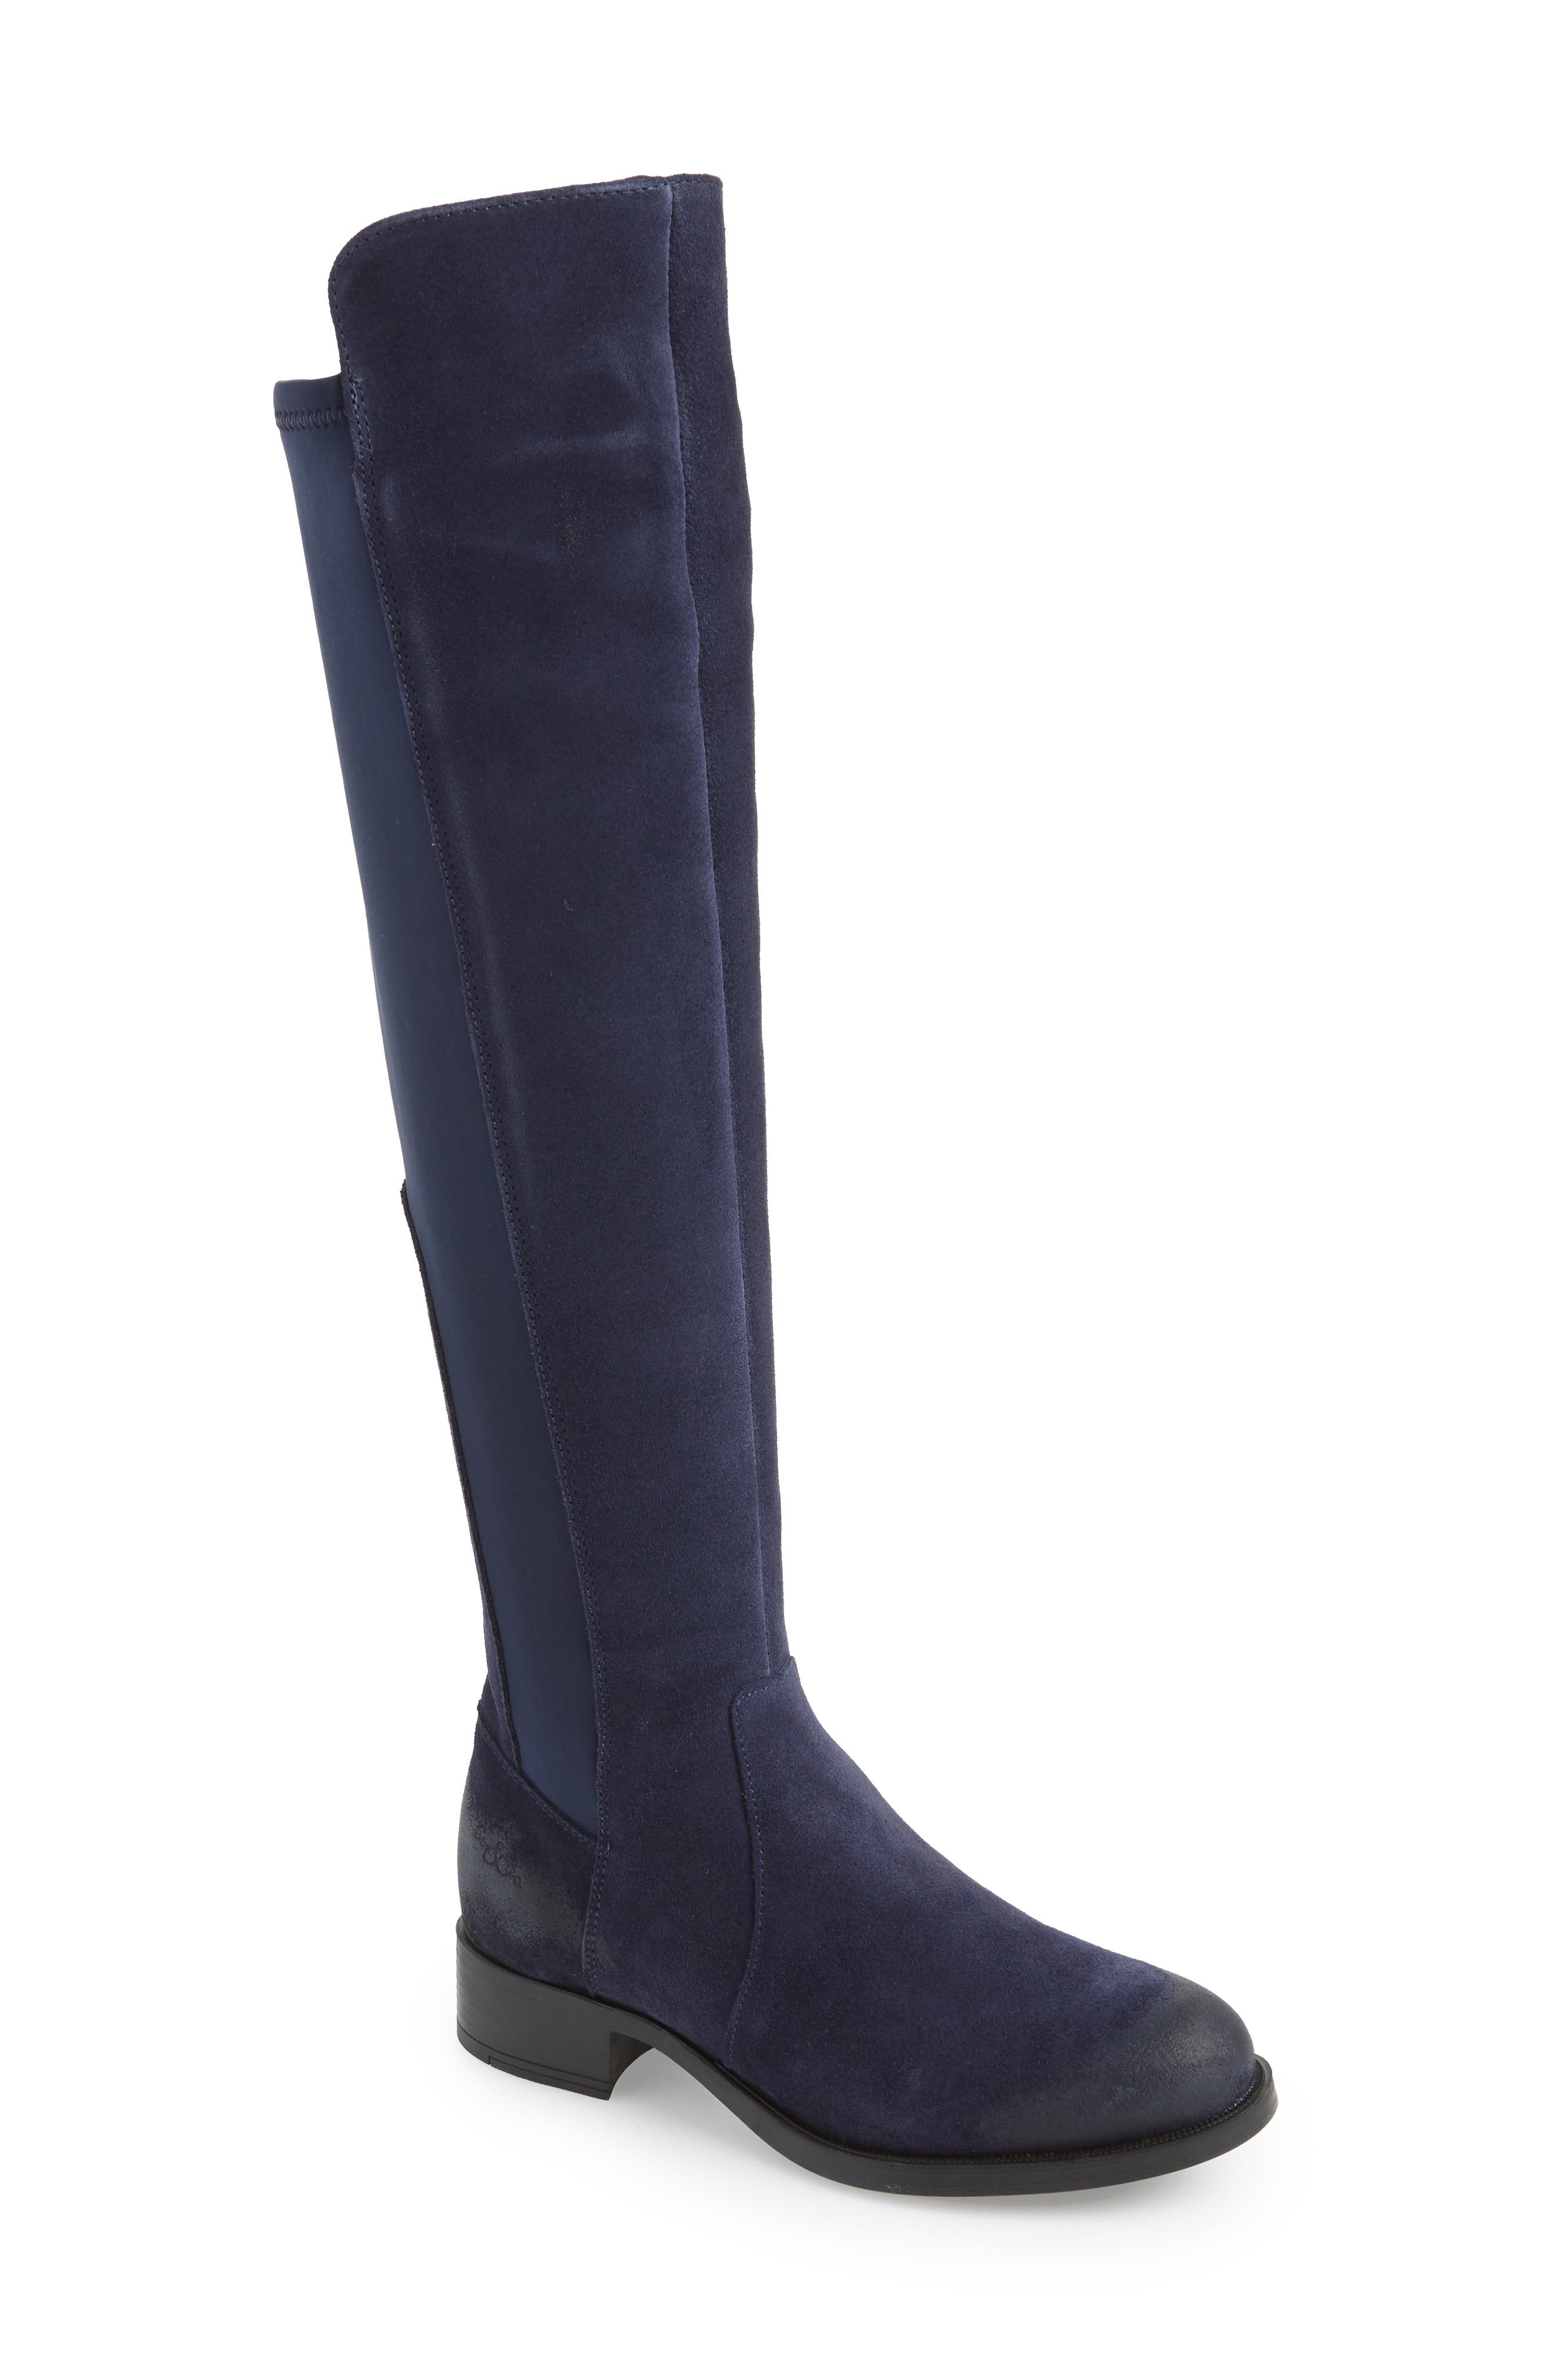 Bos. & Co. Bunt Waterproof Over The Knee Boot - Blue